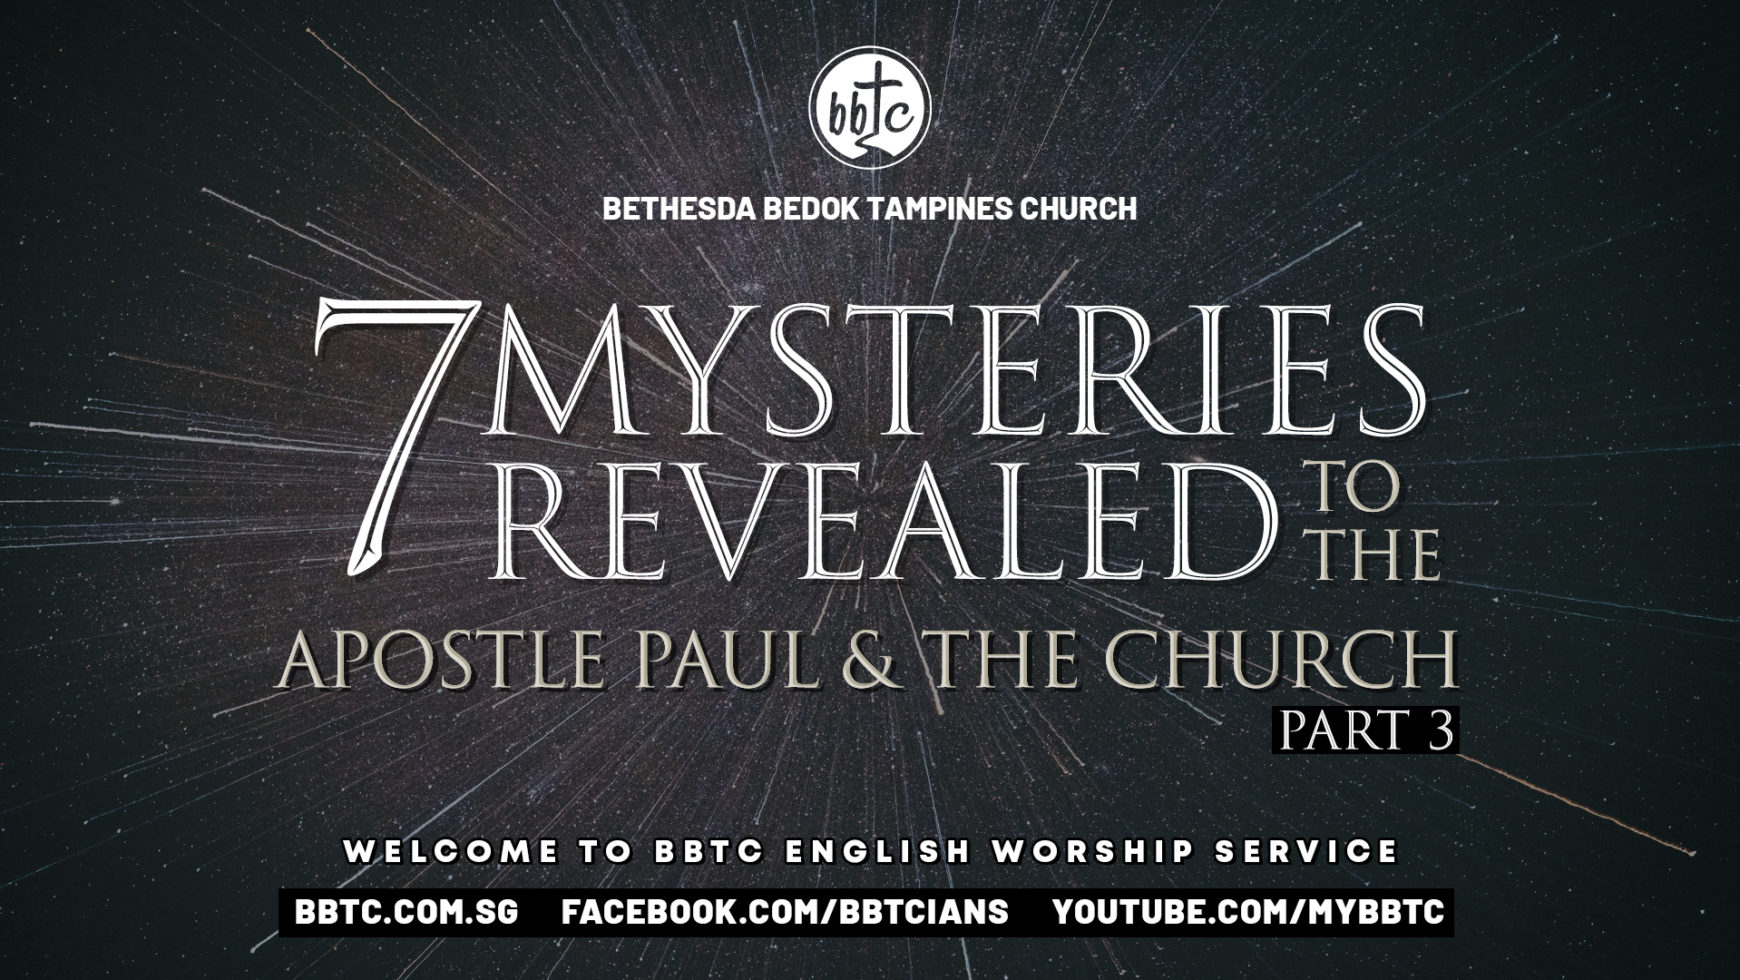 7 MYSTERIES REVEALED TO THE APOSTLE PAUL AND THE CHURCH (PART 3)